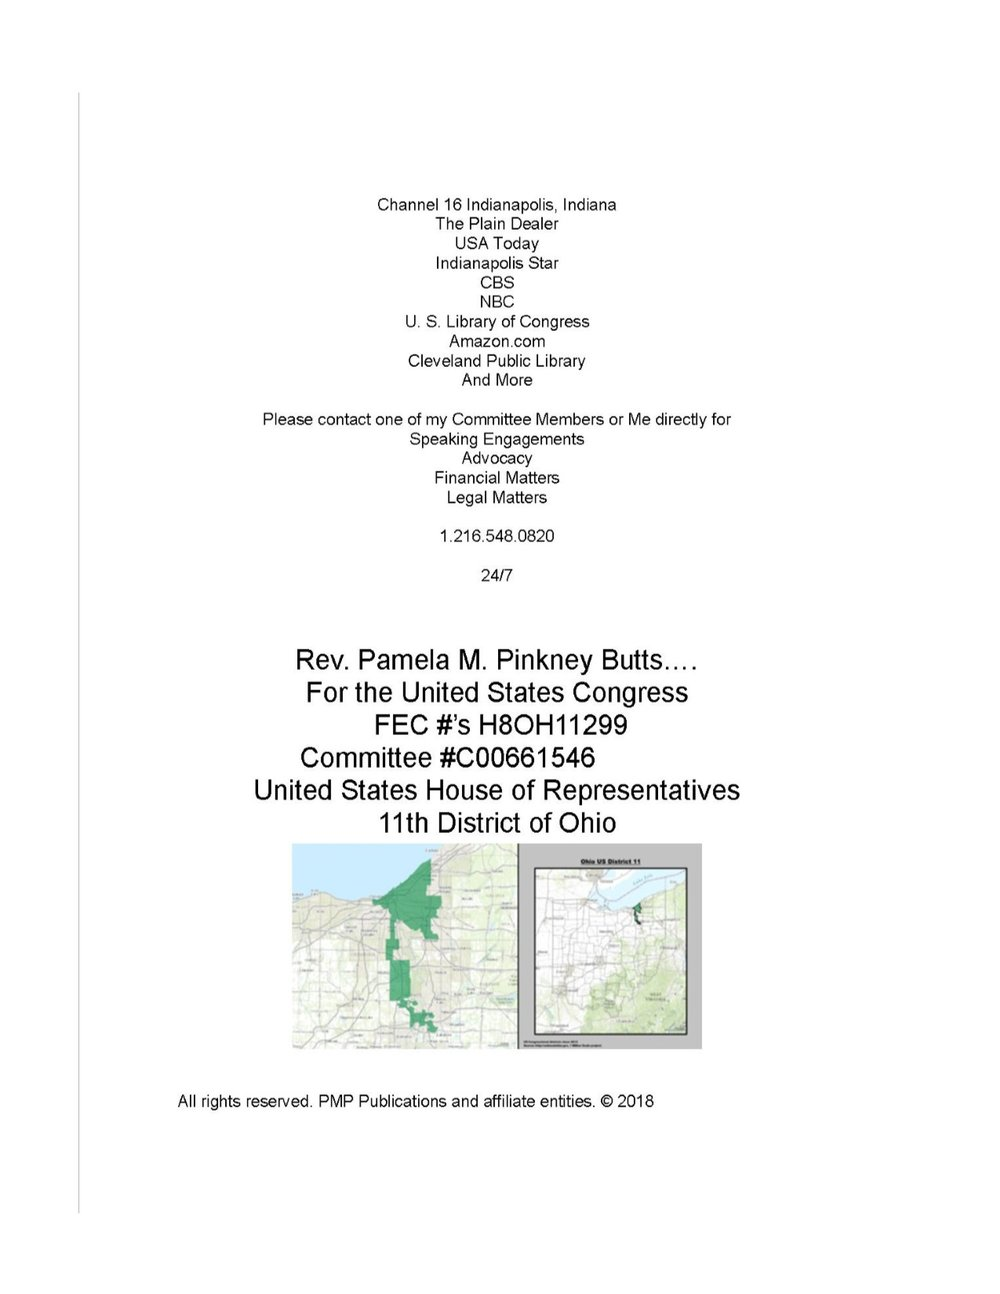 Pinkney Butts USA 2018 with Brief Bio and Site Map Page 5.jpg